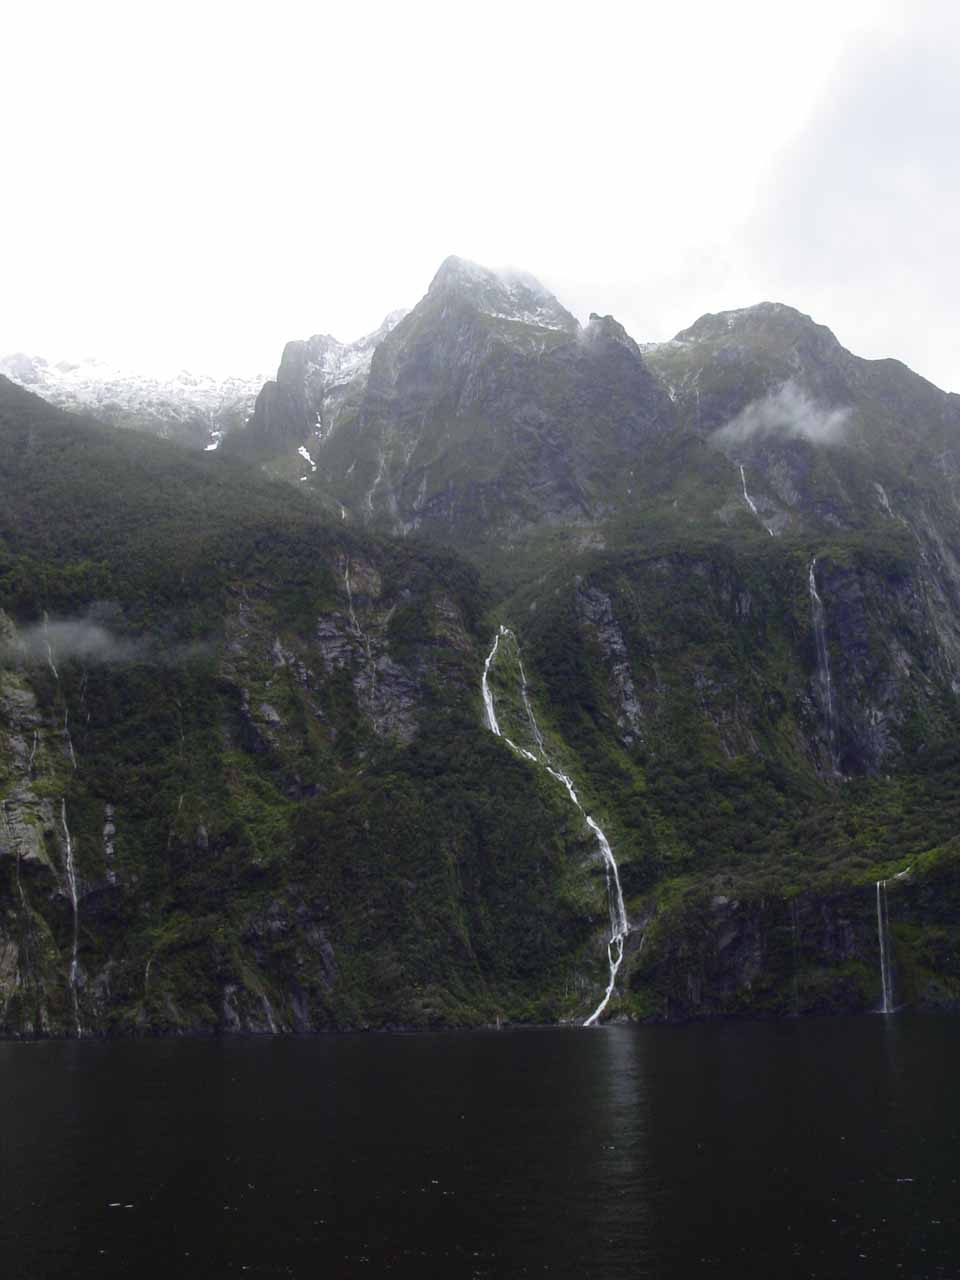 Looking across the fiord towards the S-shaped Palisade Falls